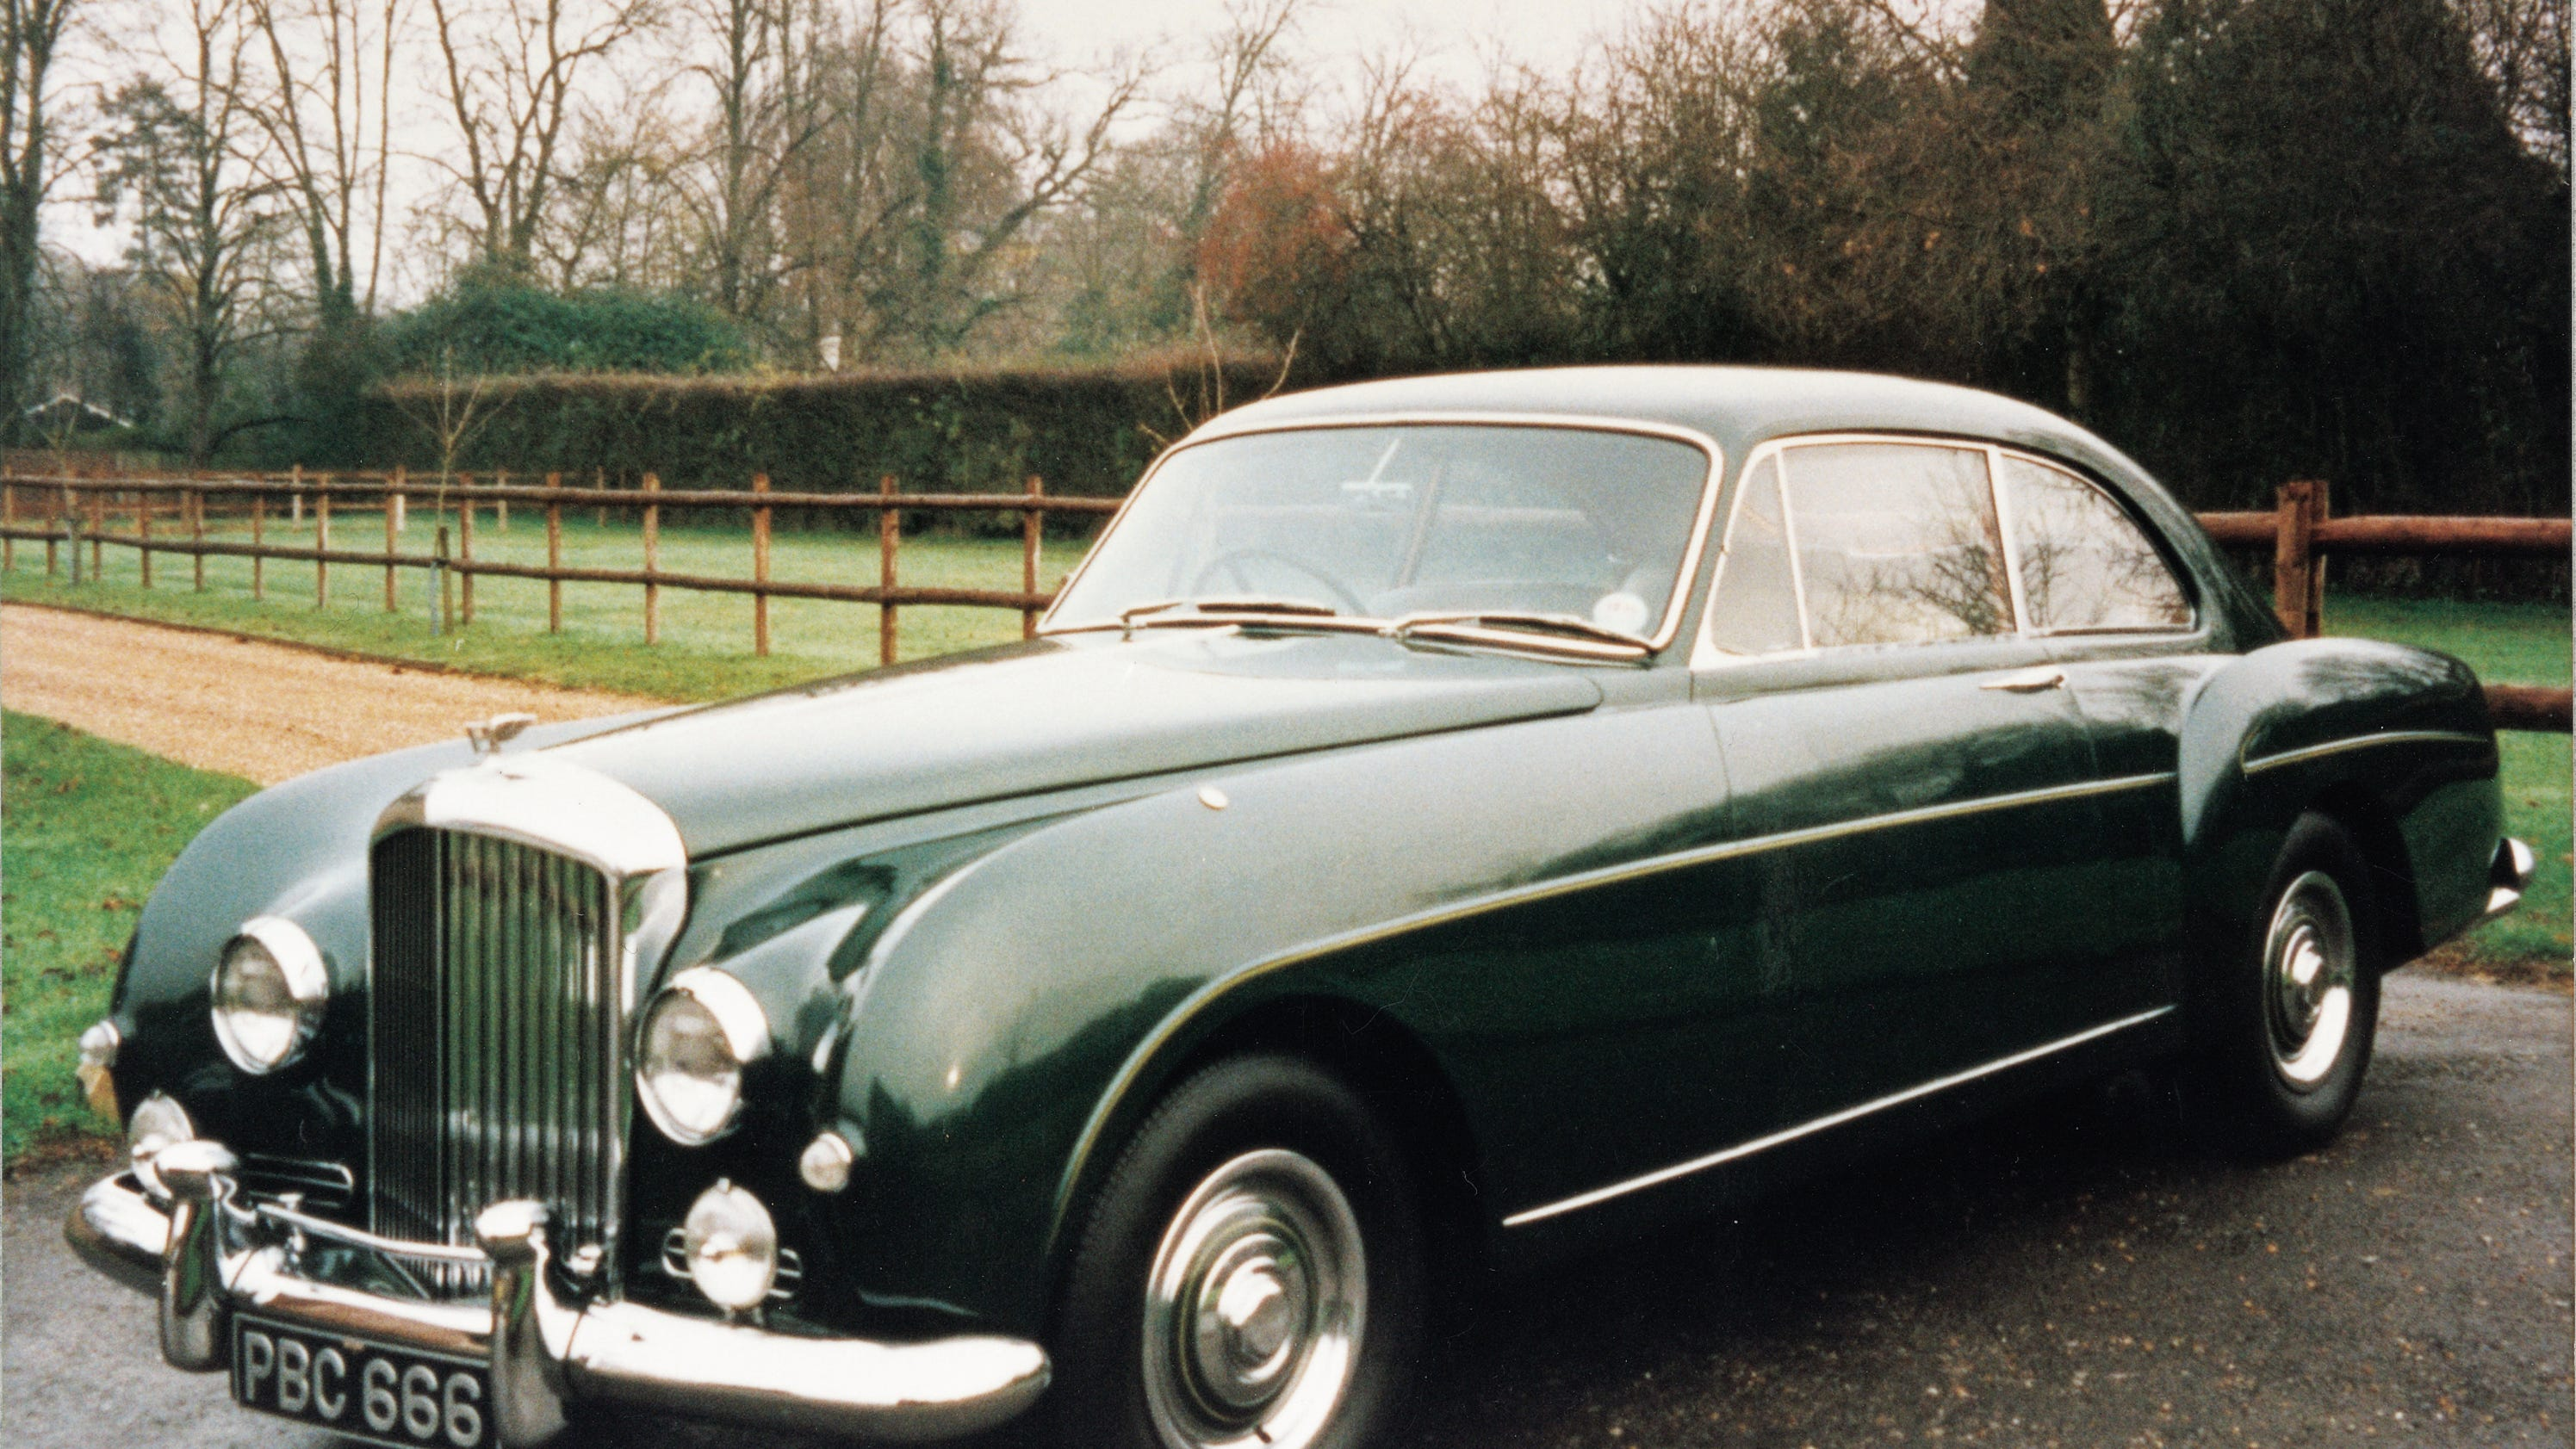 cars bentley palace classics bhp forum classic in for page sale tbhp india team bentleys bhopal vintage